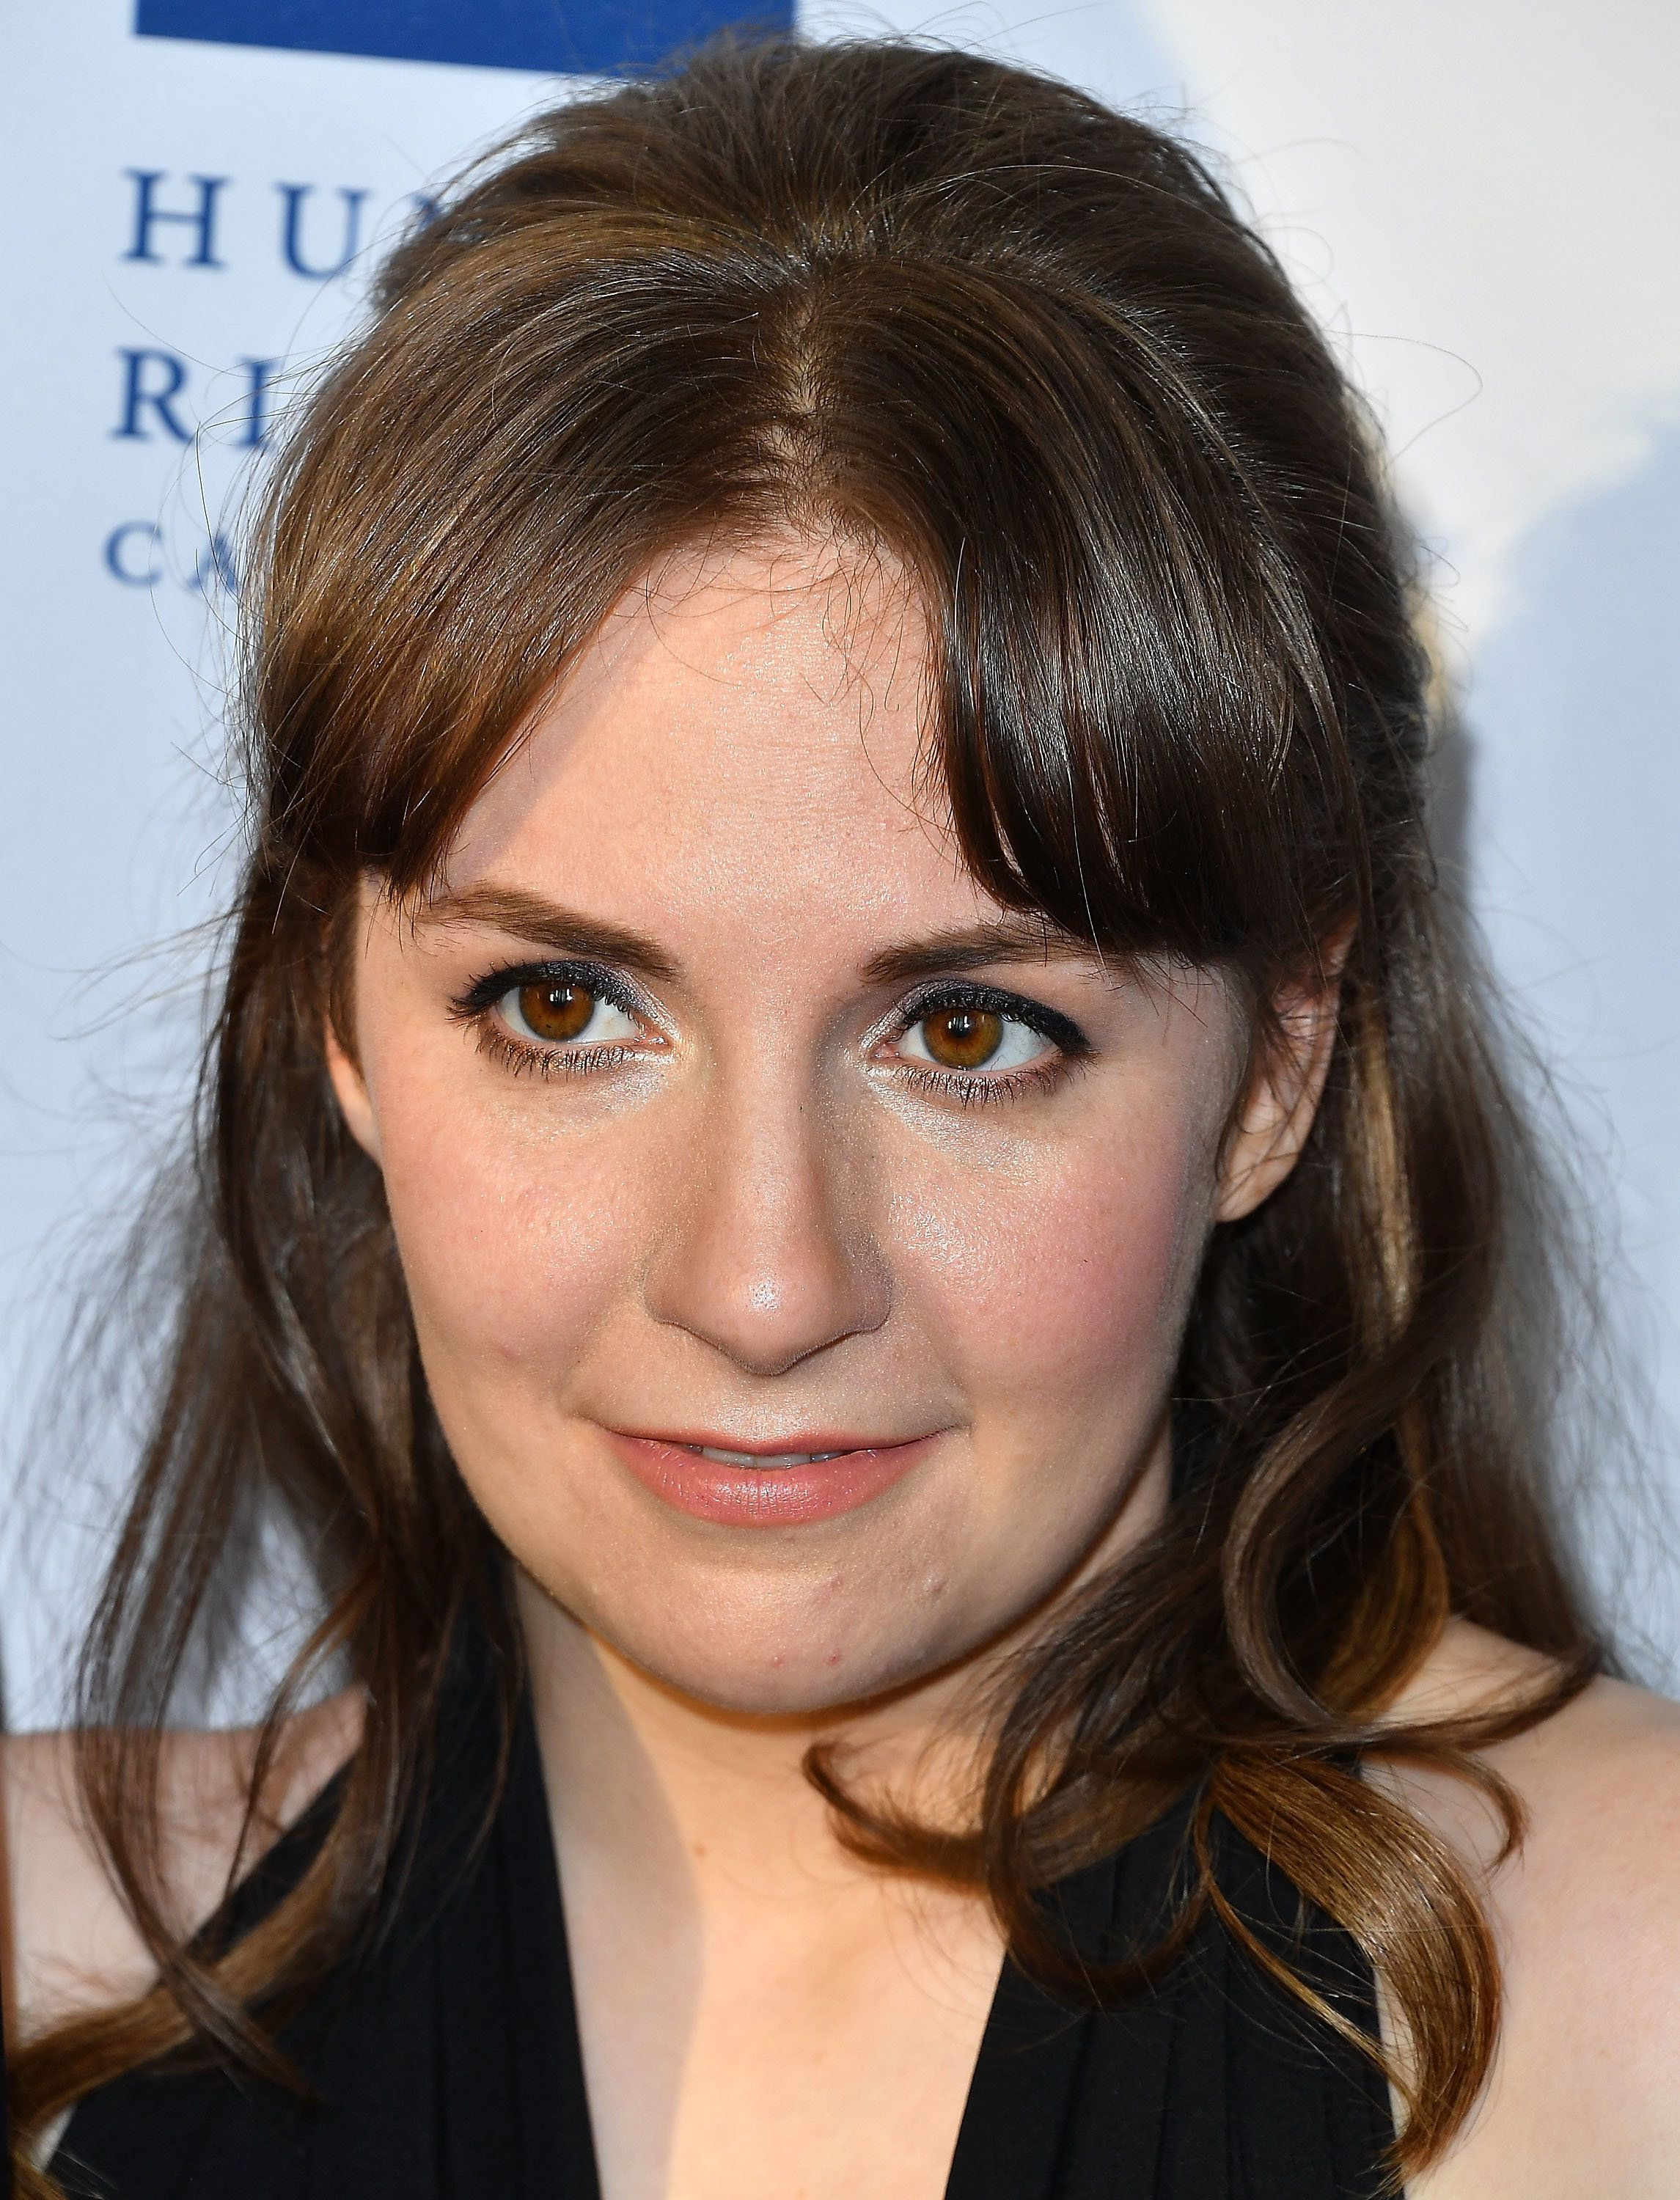 Lena Dunham Got Her Eyebrows Micro-Bladed, Here's Everything You Need To Know About